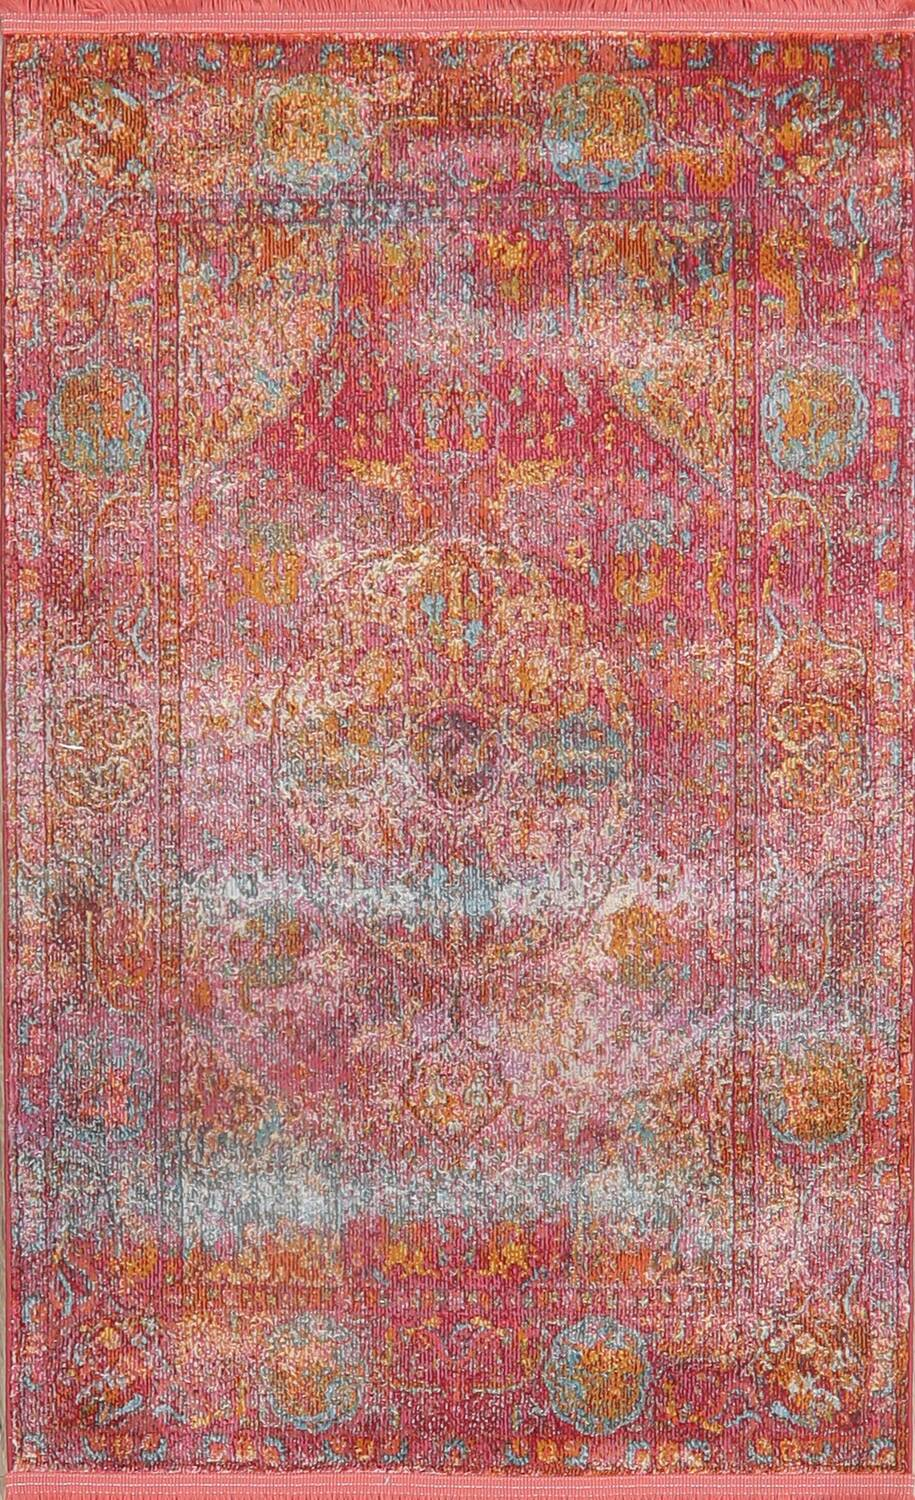 Hunting Design Pictorial Distressed Heat-Set Area Rugs image 9